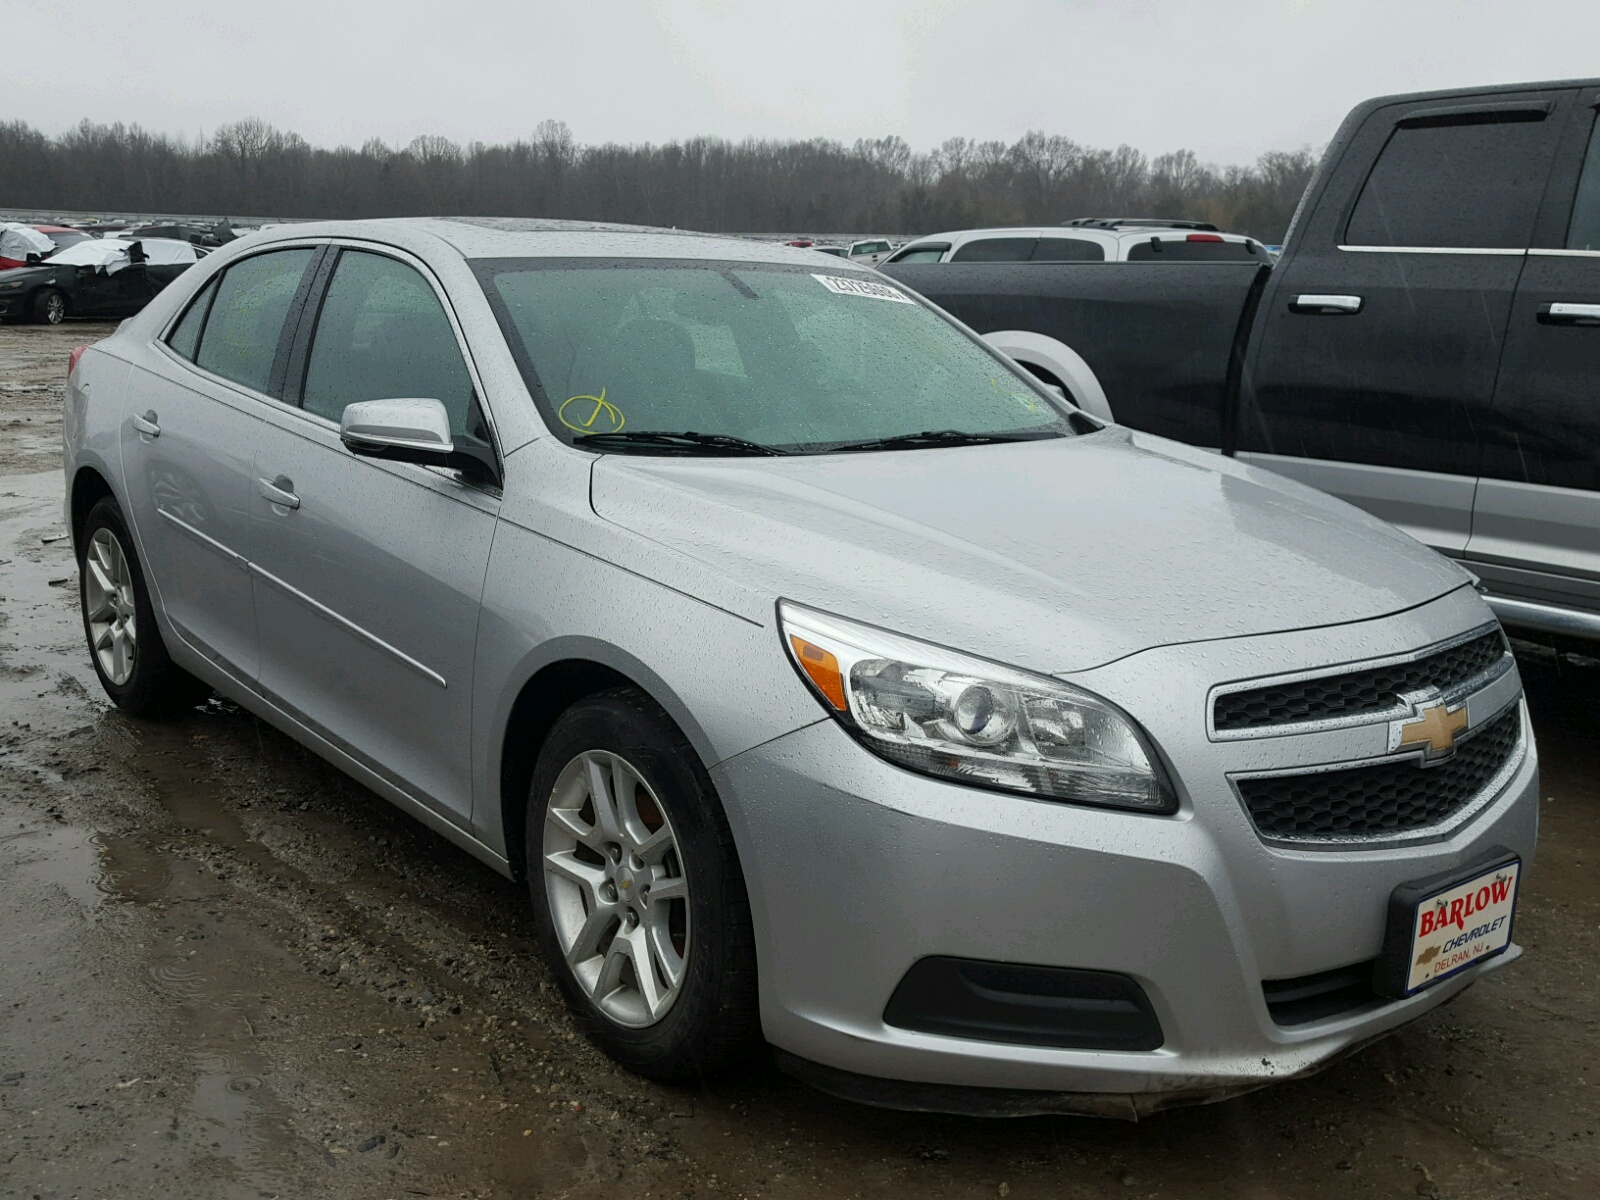 owned lt malibu inventory pre panorama certified in used chevrolet car fwd